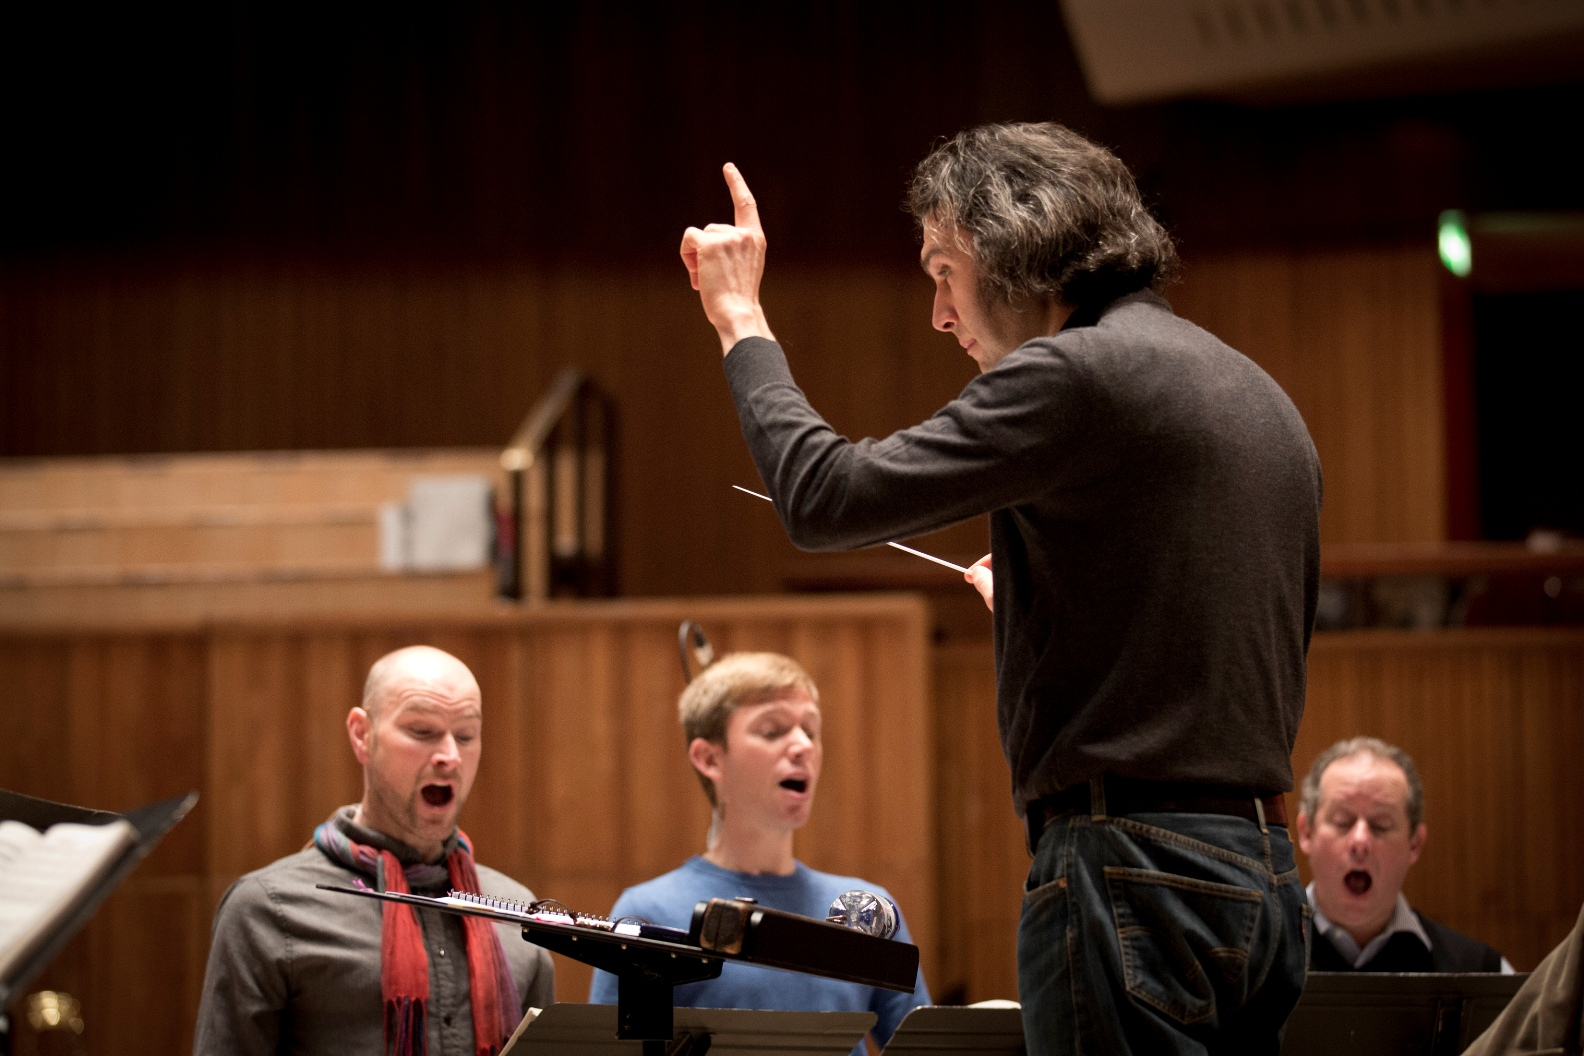 Countertenor trio and Jurowski in El Nino at the Royal Festival Hall